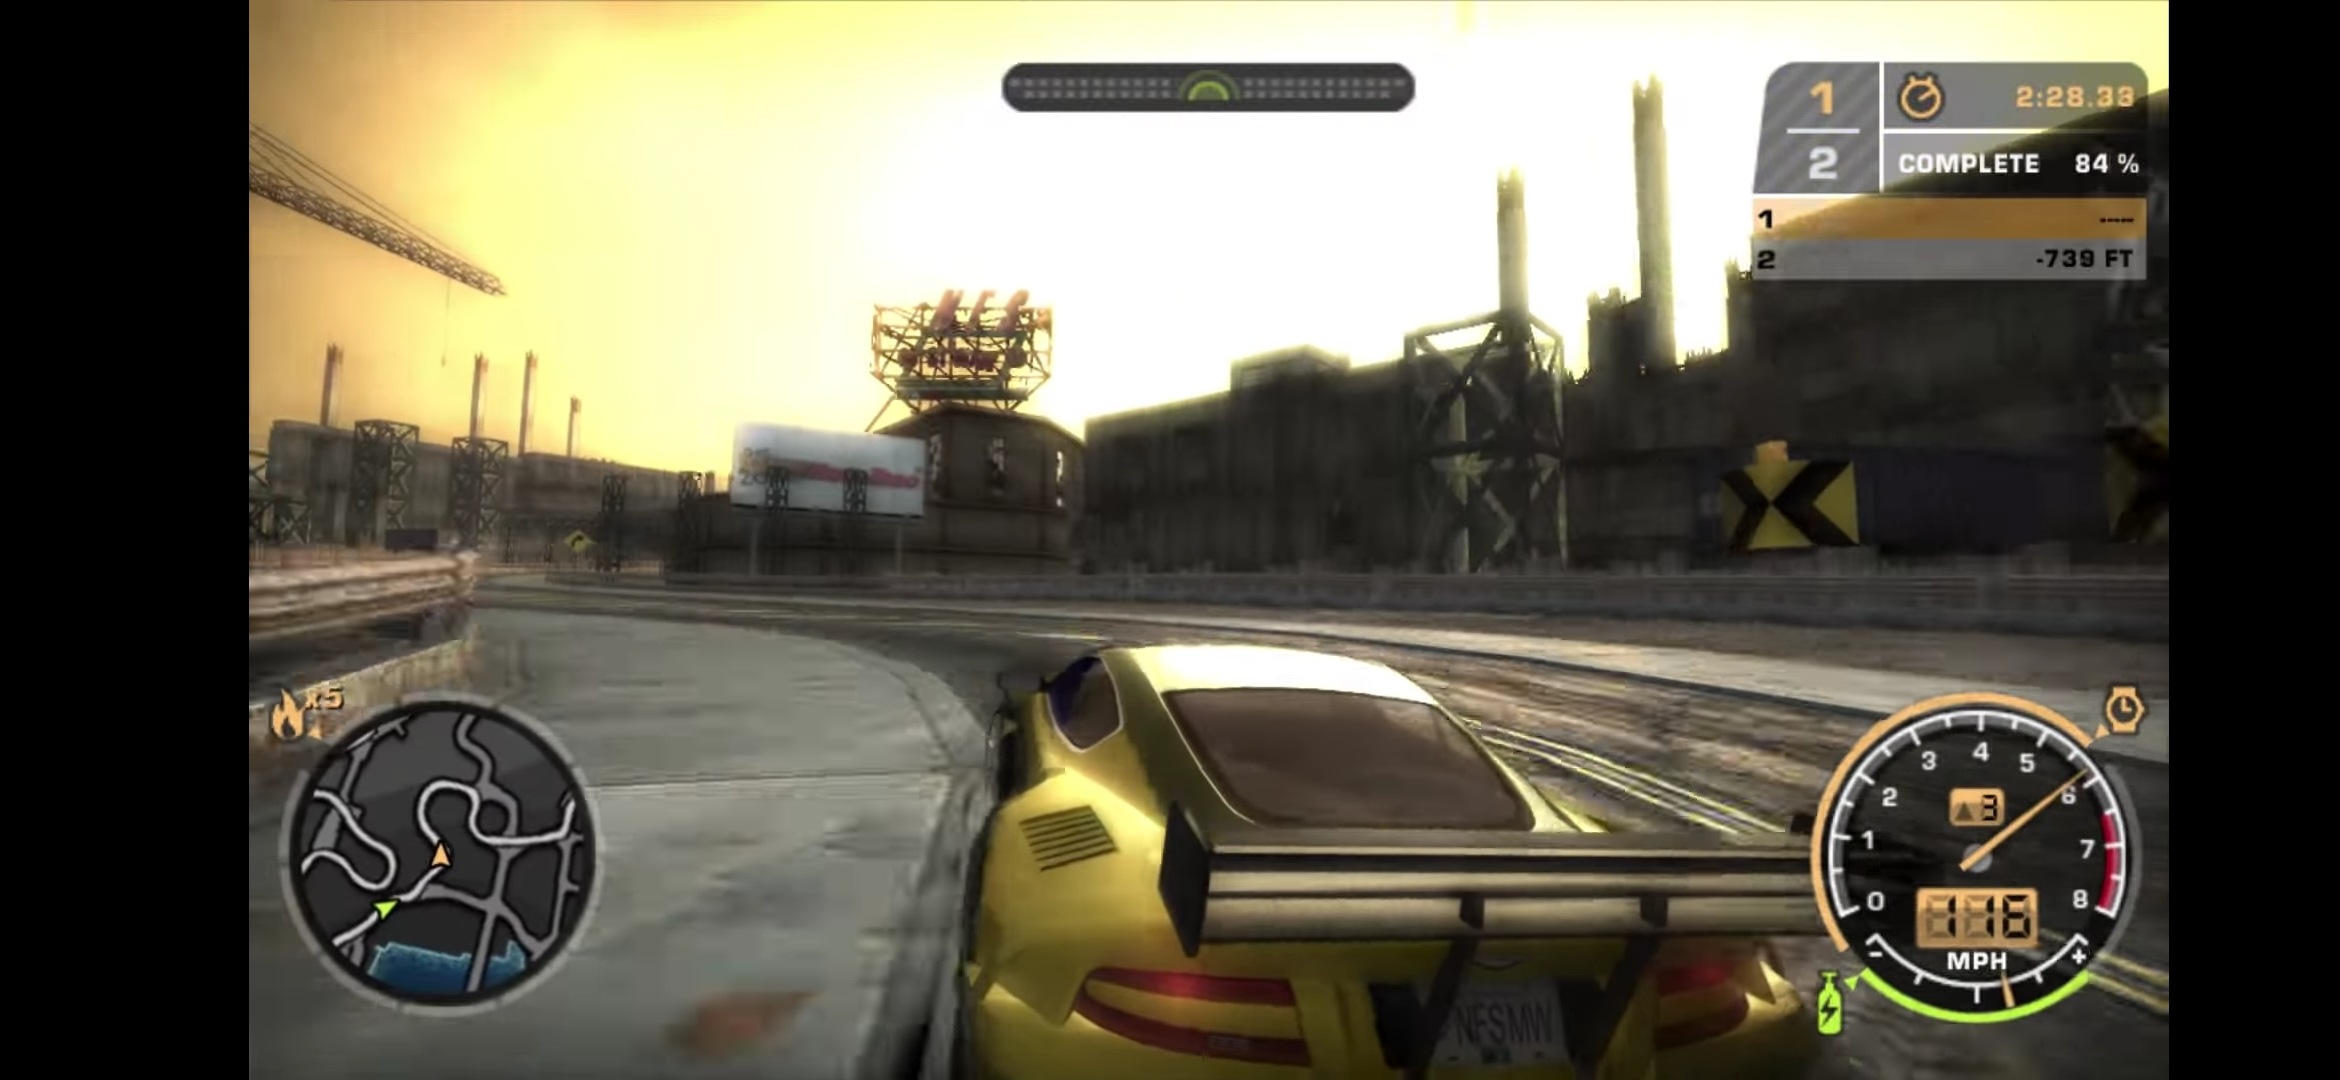 Nfs Most Wanted 2005 Highly Compressed Pc Download 200gaming